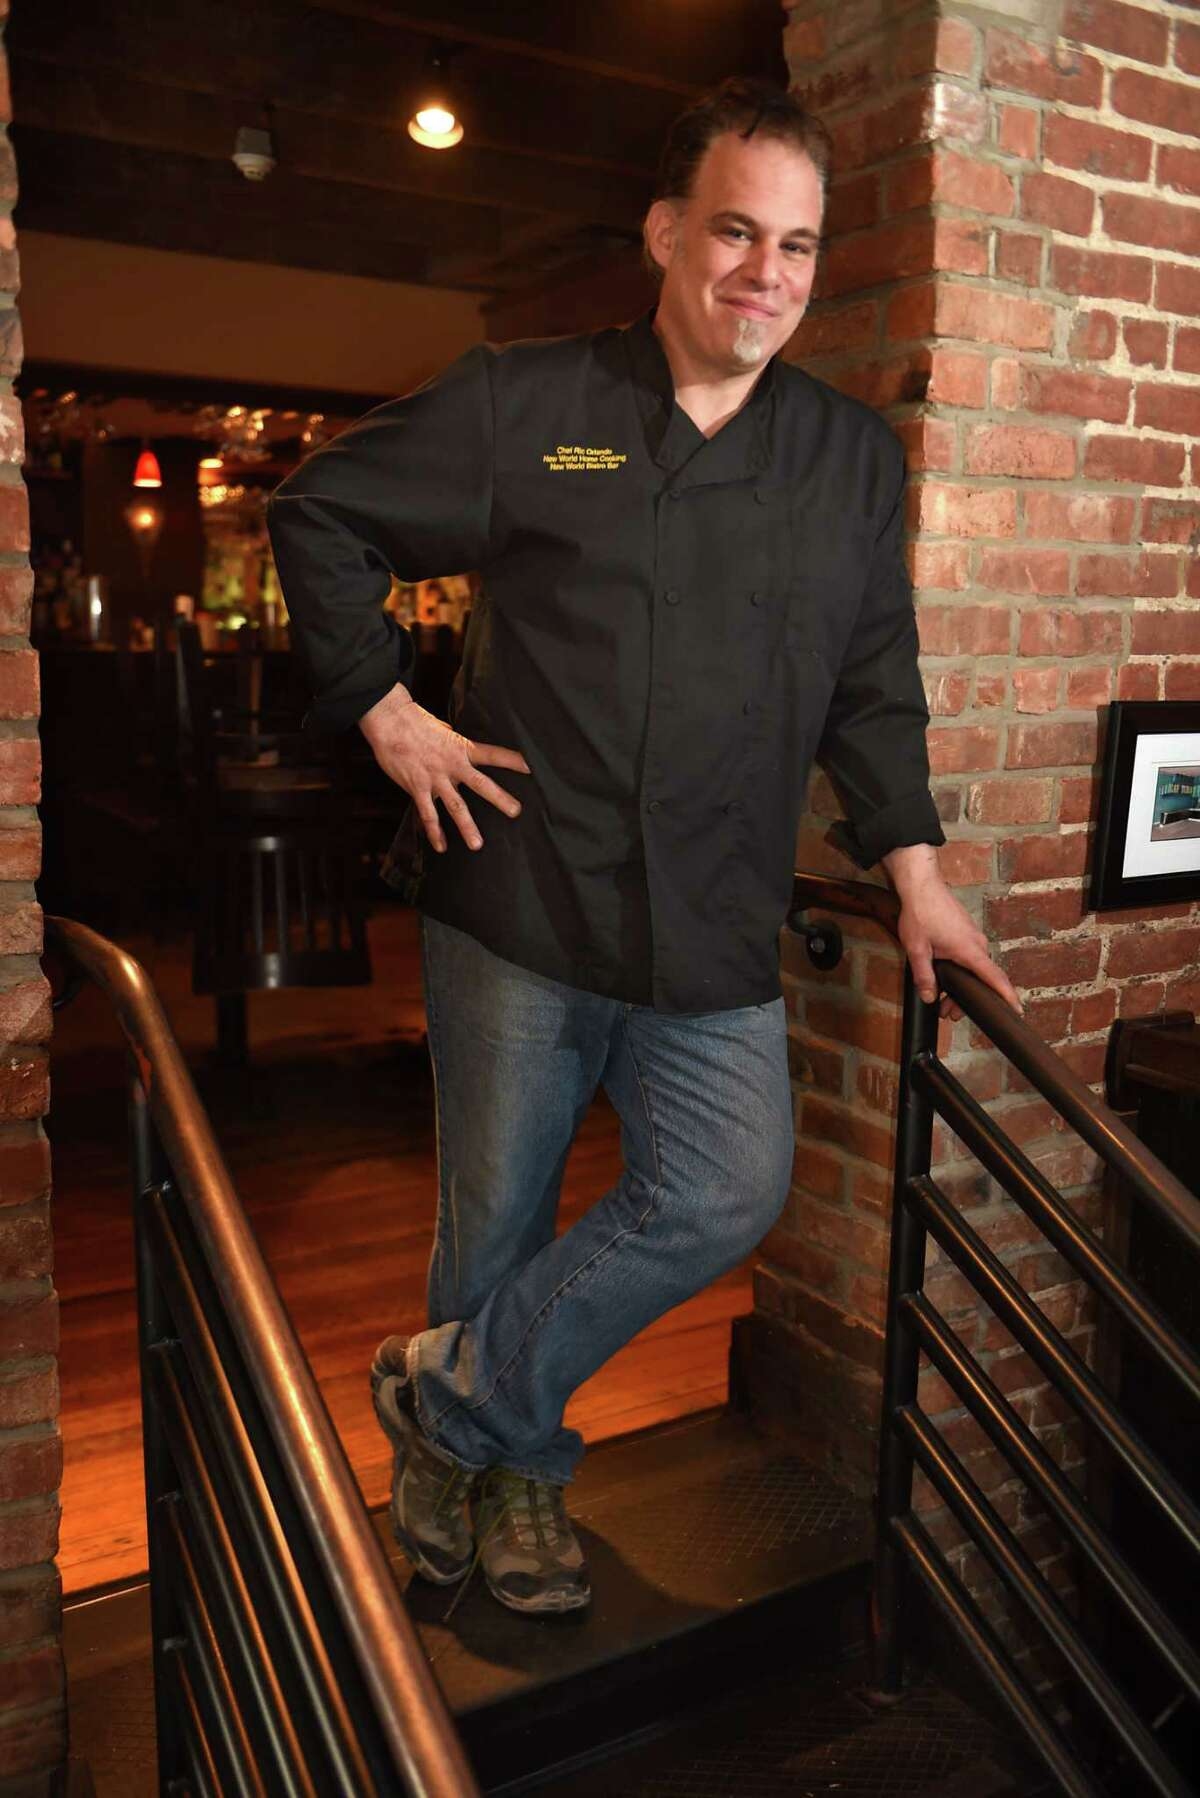 Executive Chef Ric Orlando poses in his restaurant New World Bistro Bar on Delaware Ave. on Tuesday, Feb. 20, 2018 in Albany, N.Y. (Lori Van Buren/Times Union)